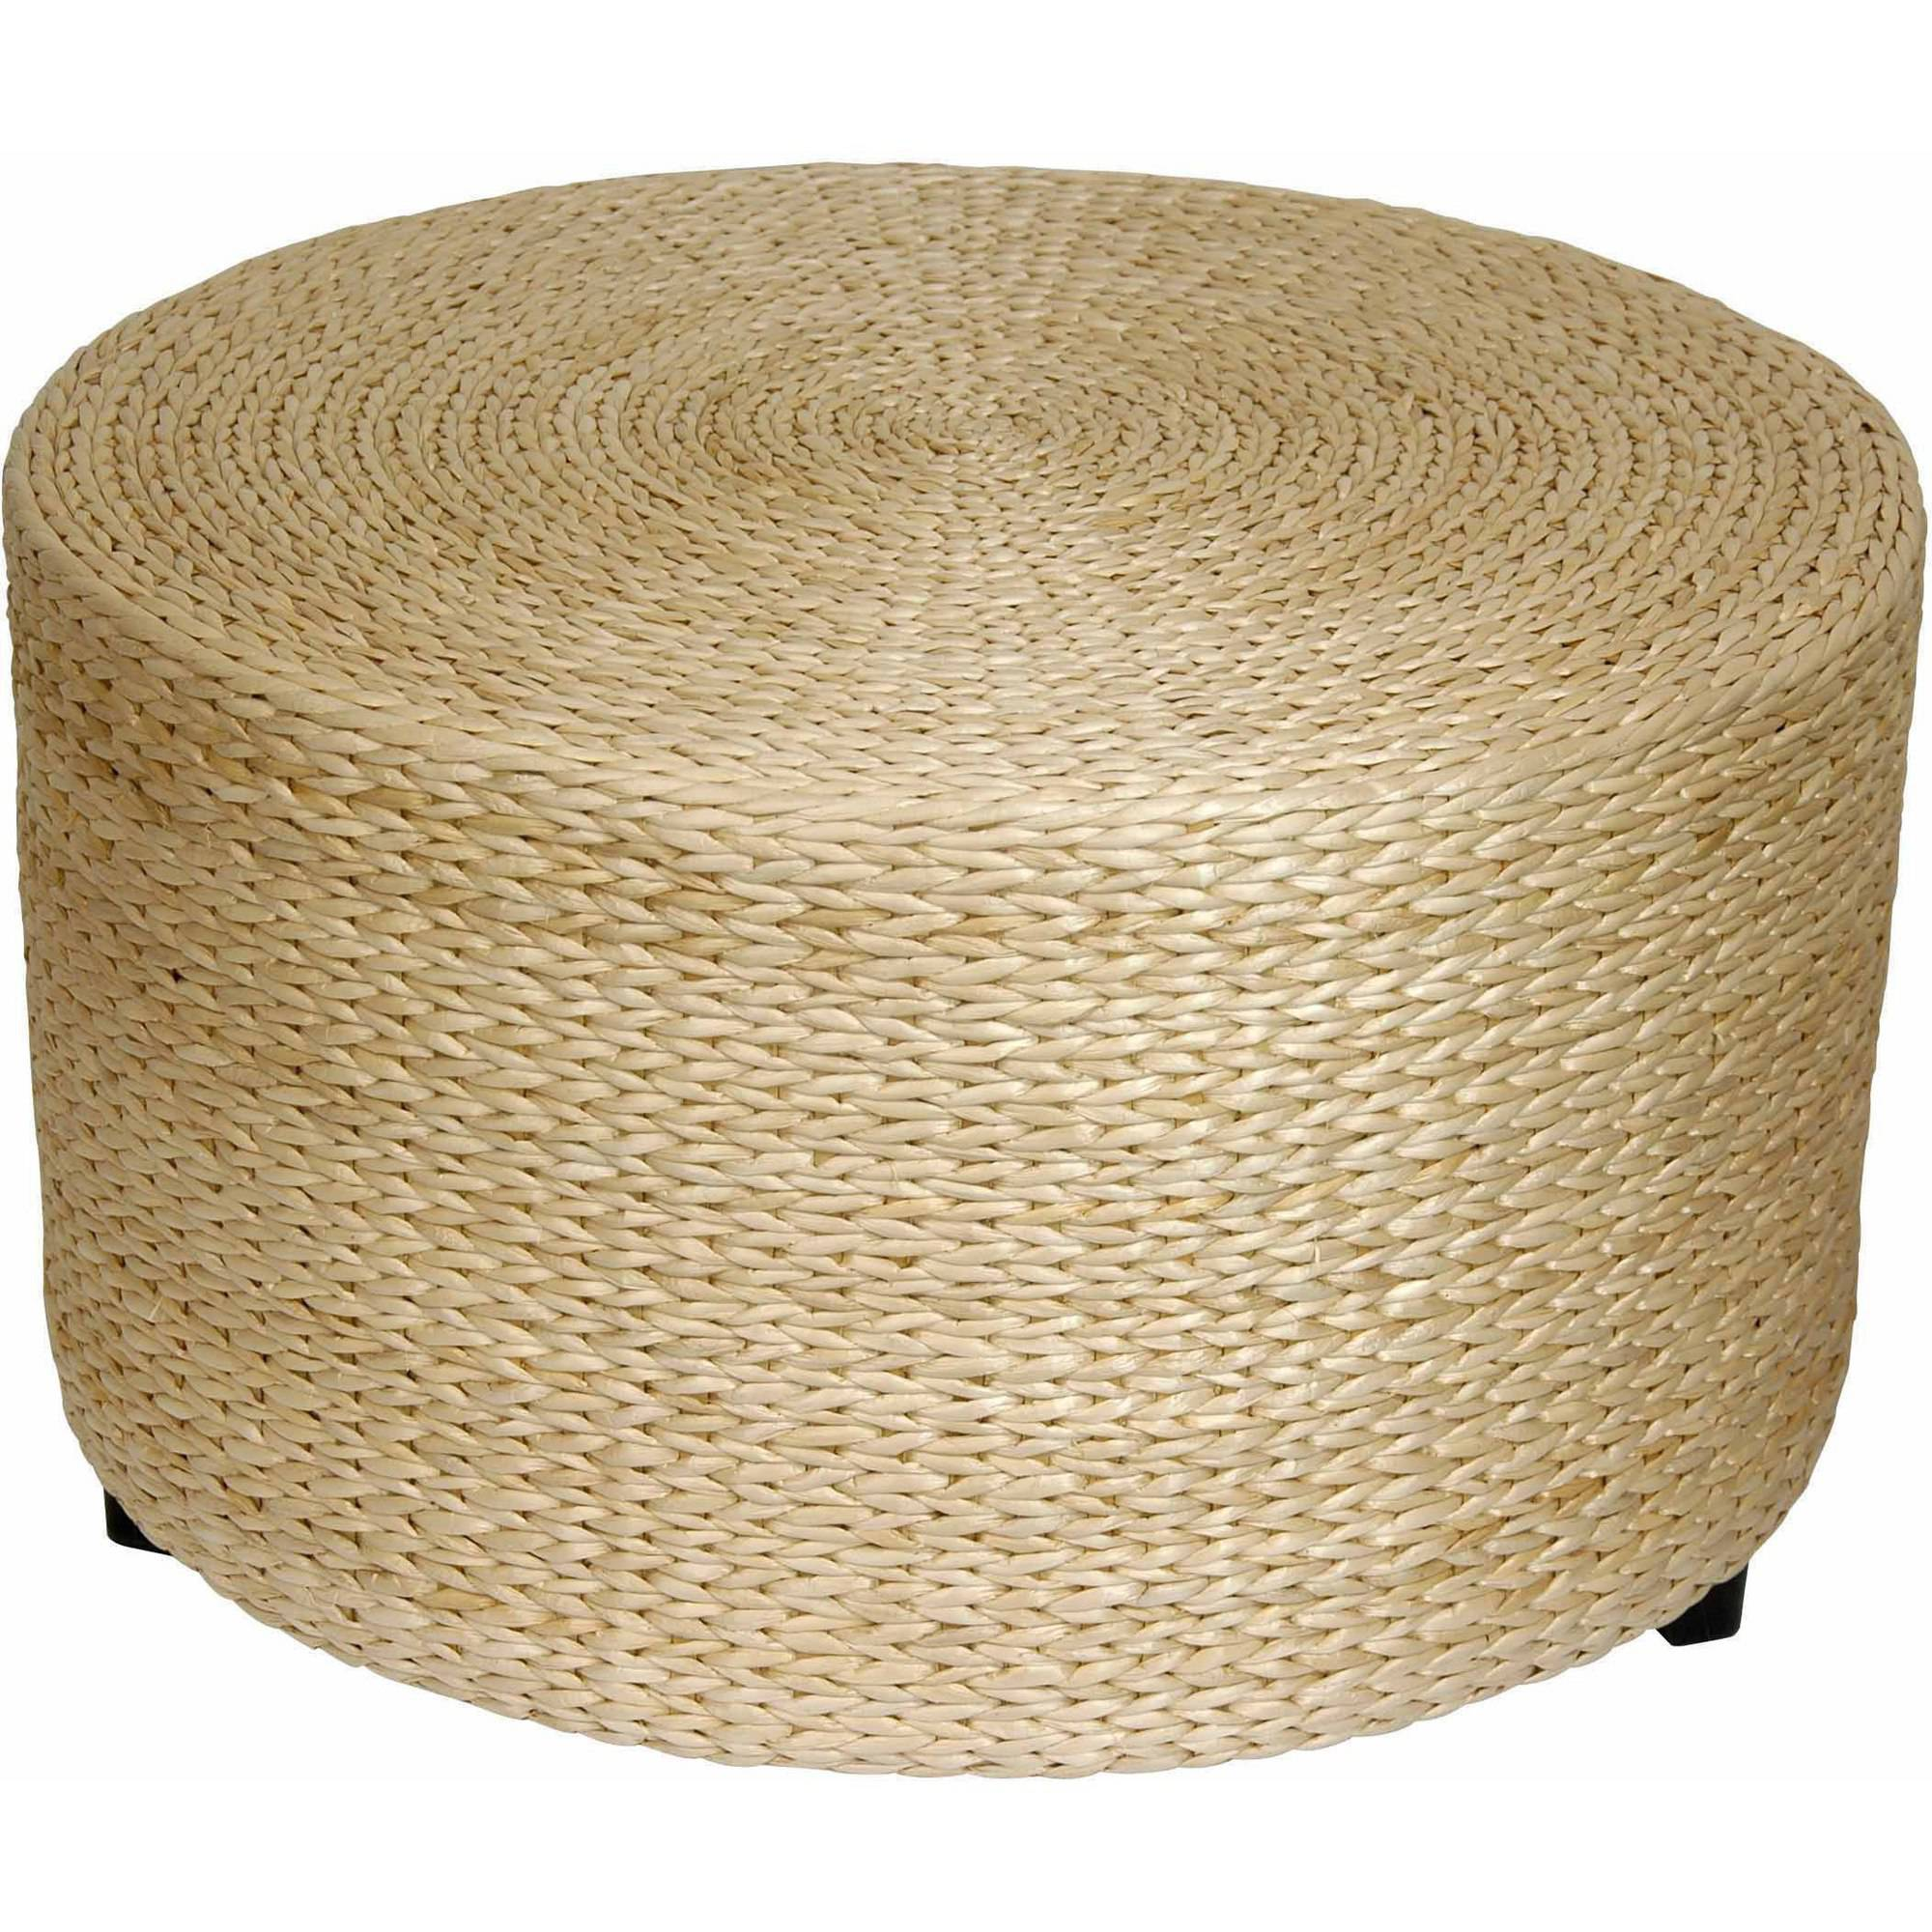 Rush Grass Coffee Table/Ottoman